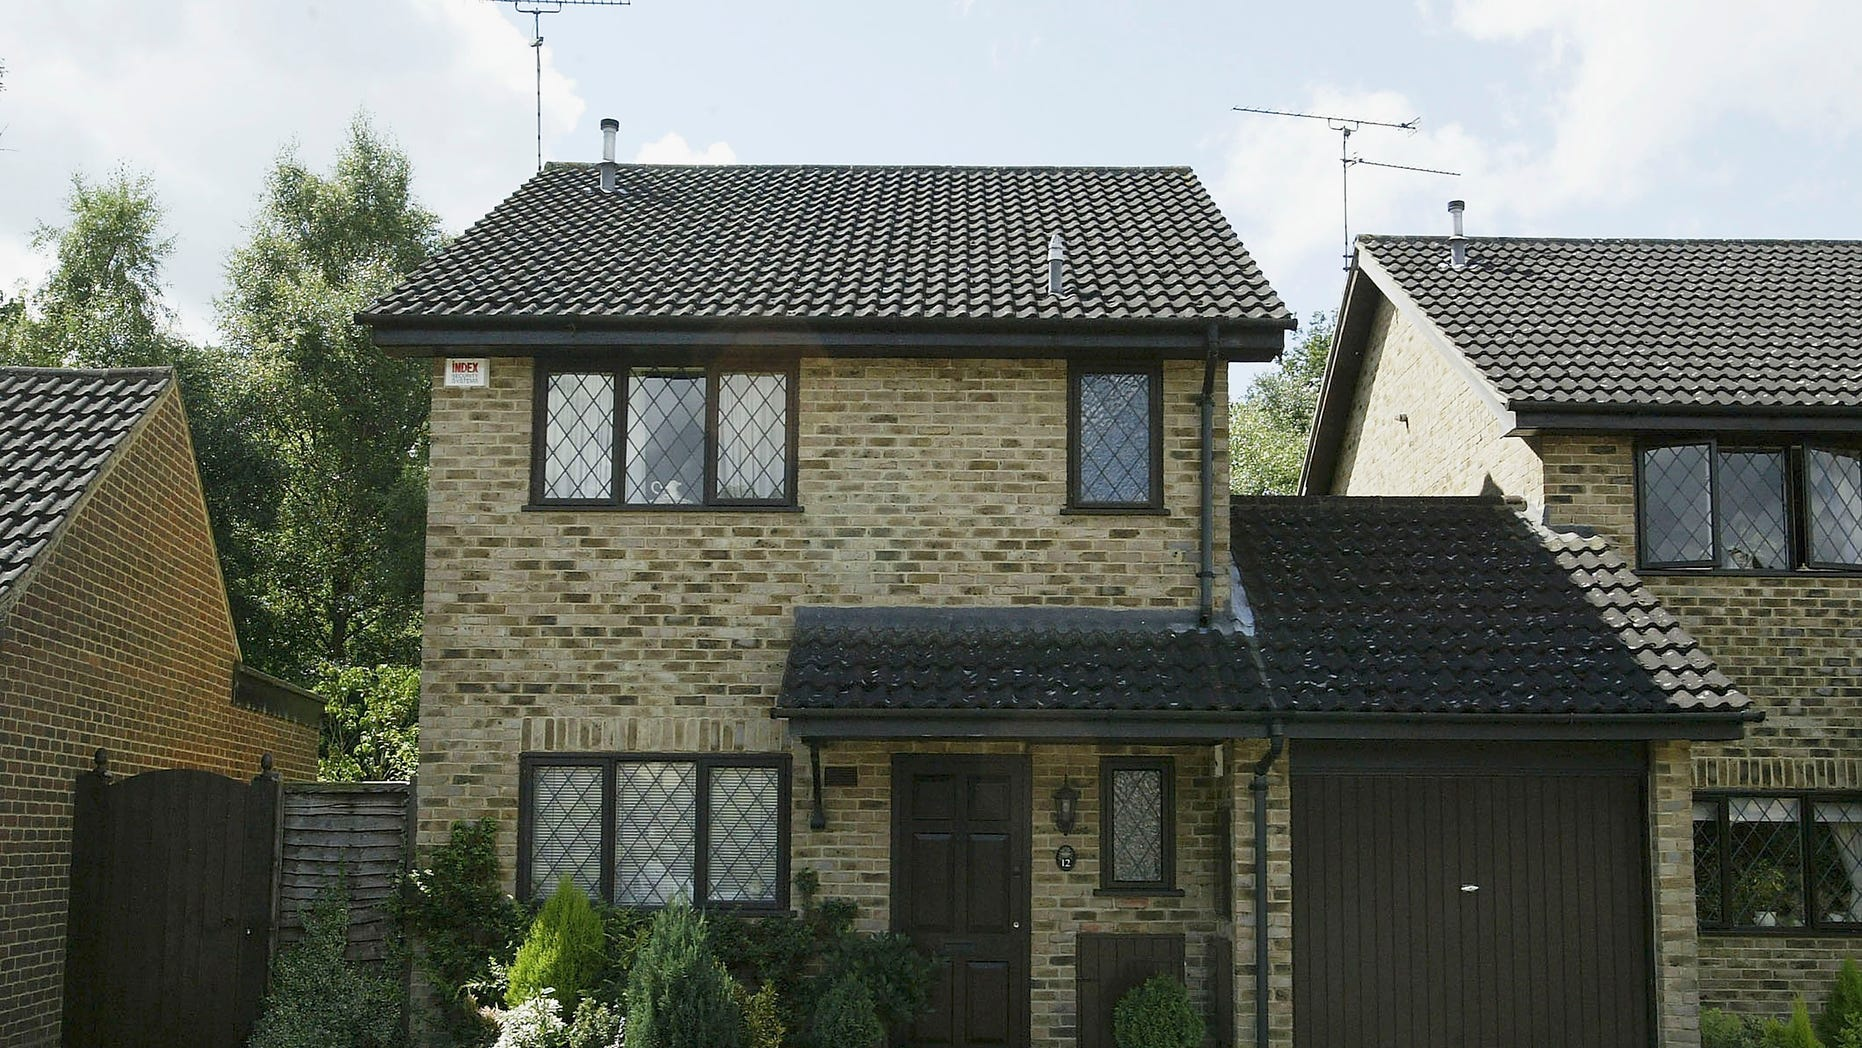 The facade of the house where Harry POtter lived in the Warner Brothers film series in Bracknell, England.